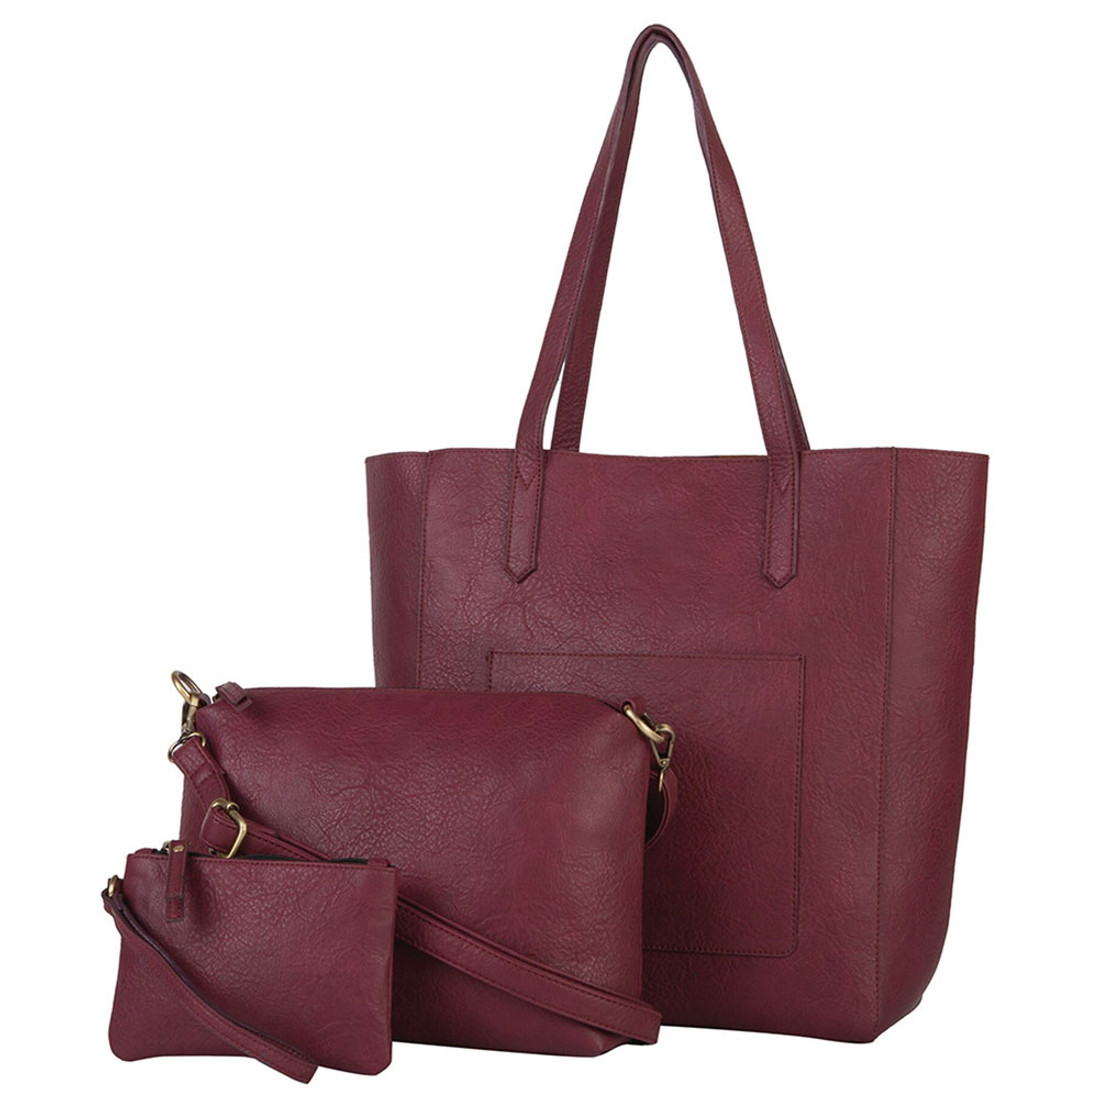 Mona B 3 Piece Tote Bag Set